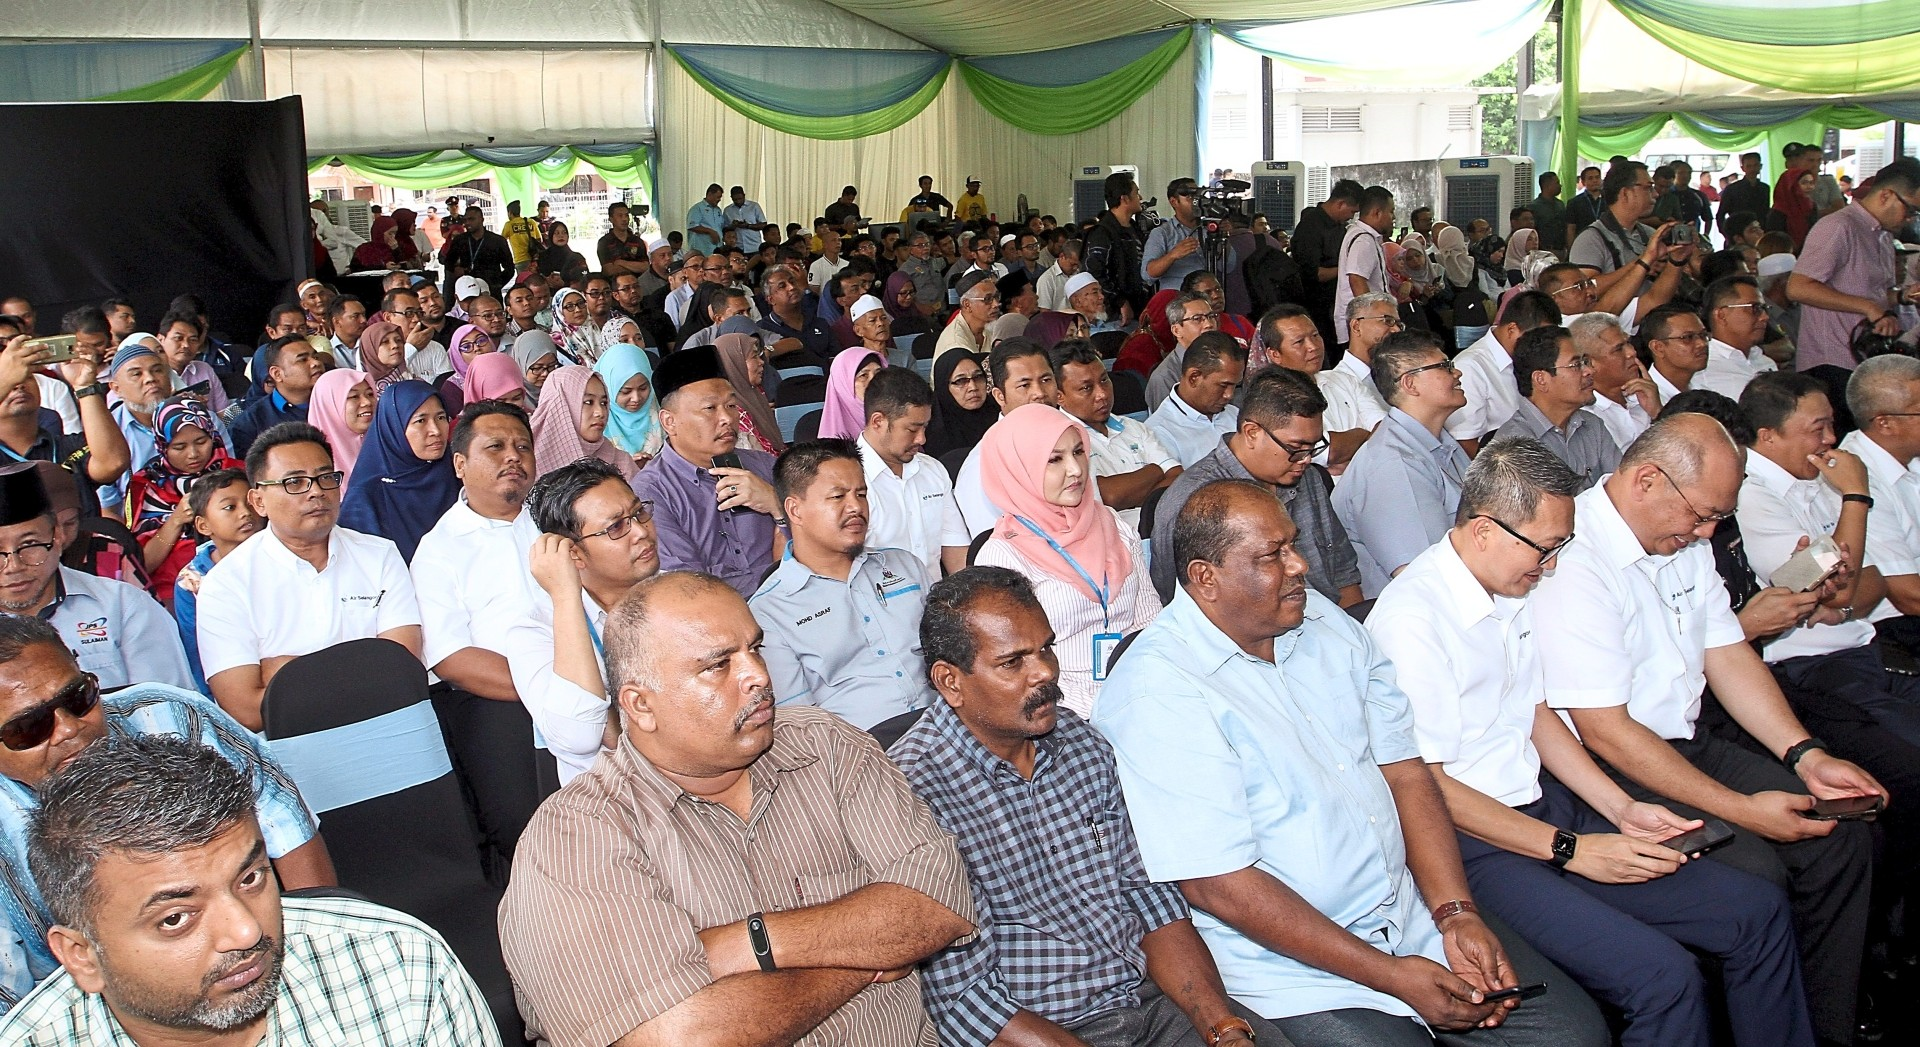 Full turnout at the launch of the Be A Water Conservation Warrior campaign at Padang Awam Batu Caves in Gombak.